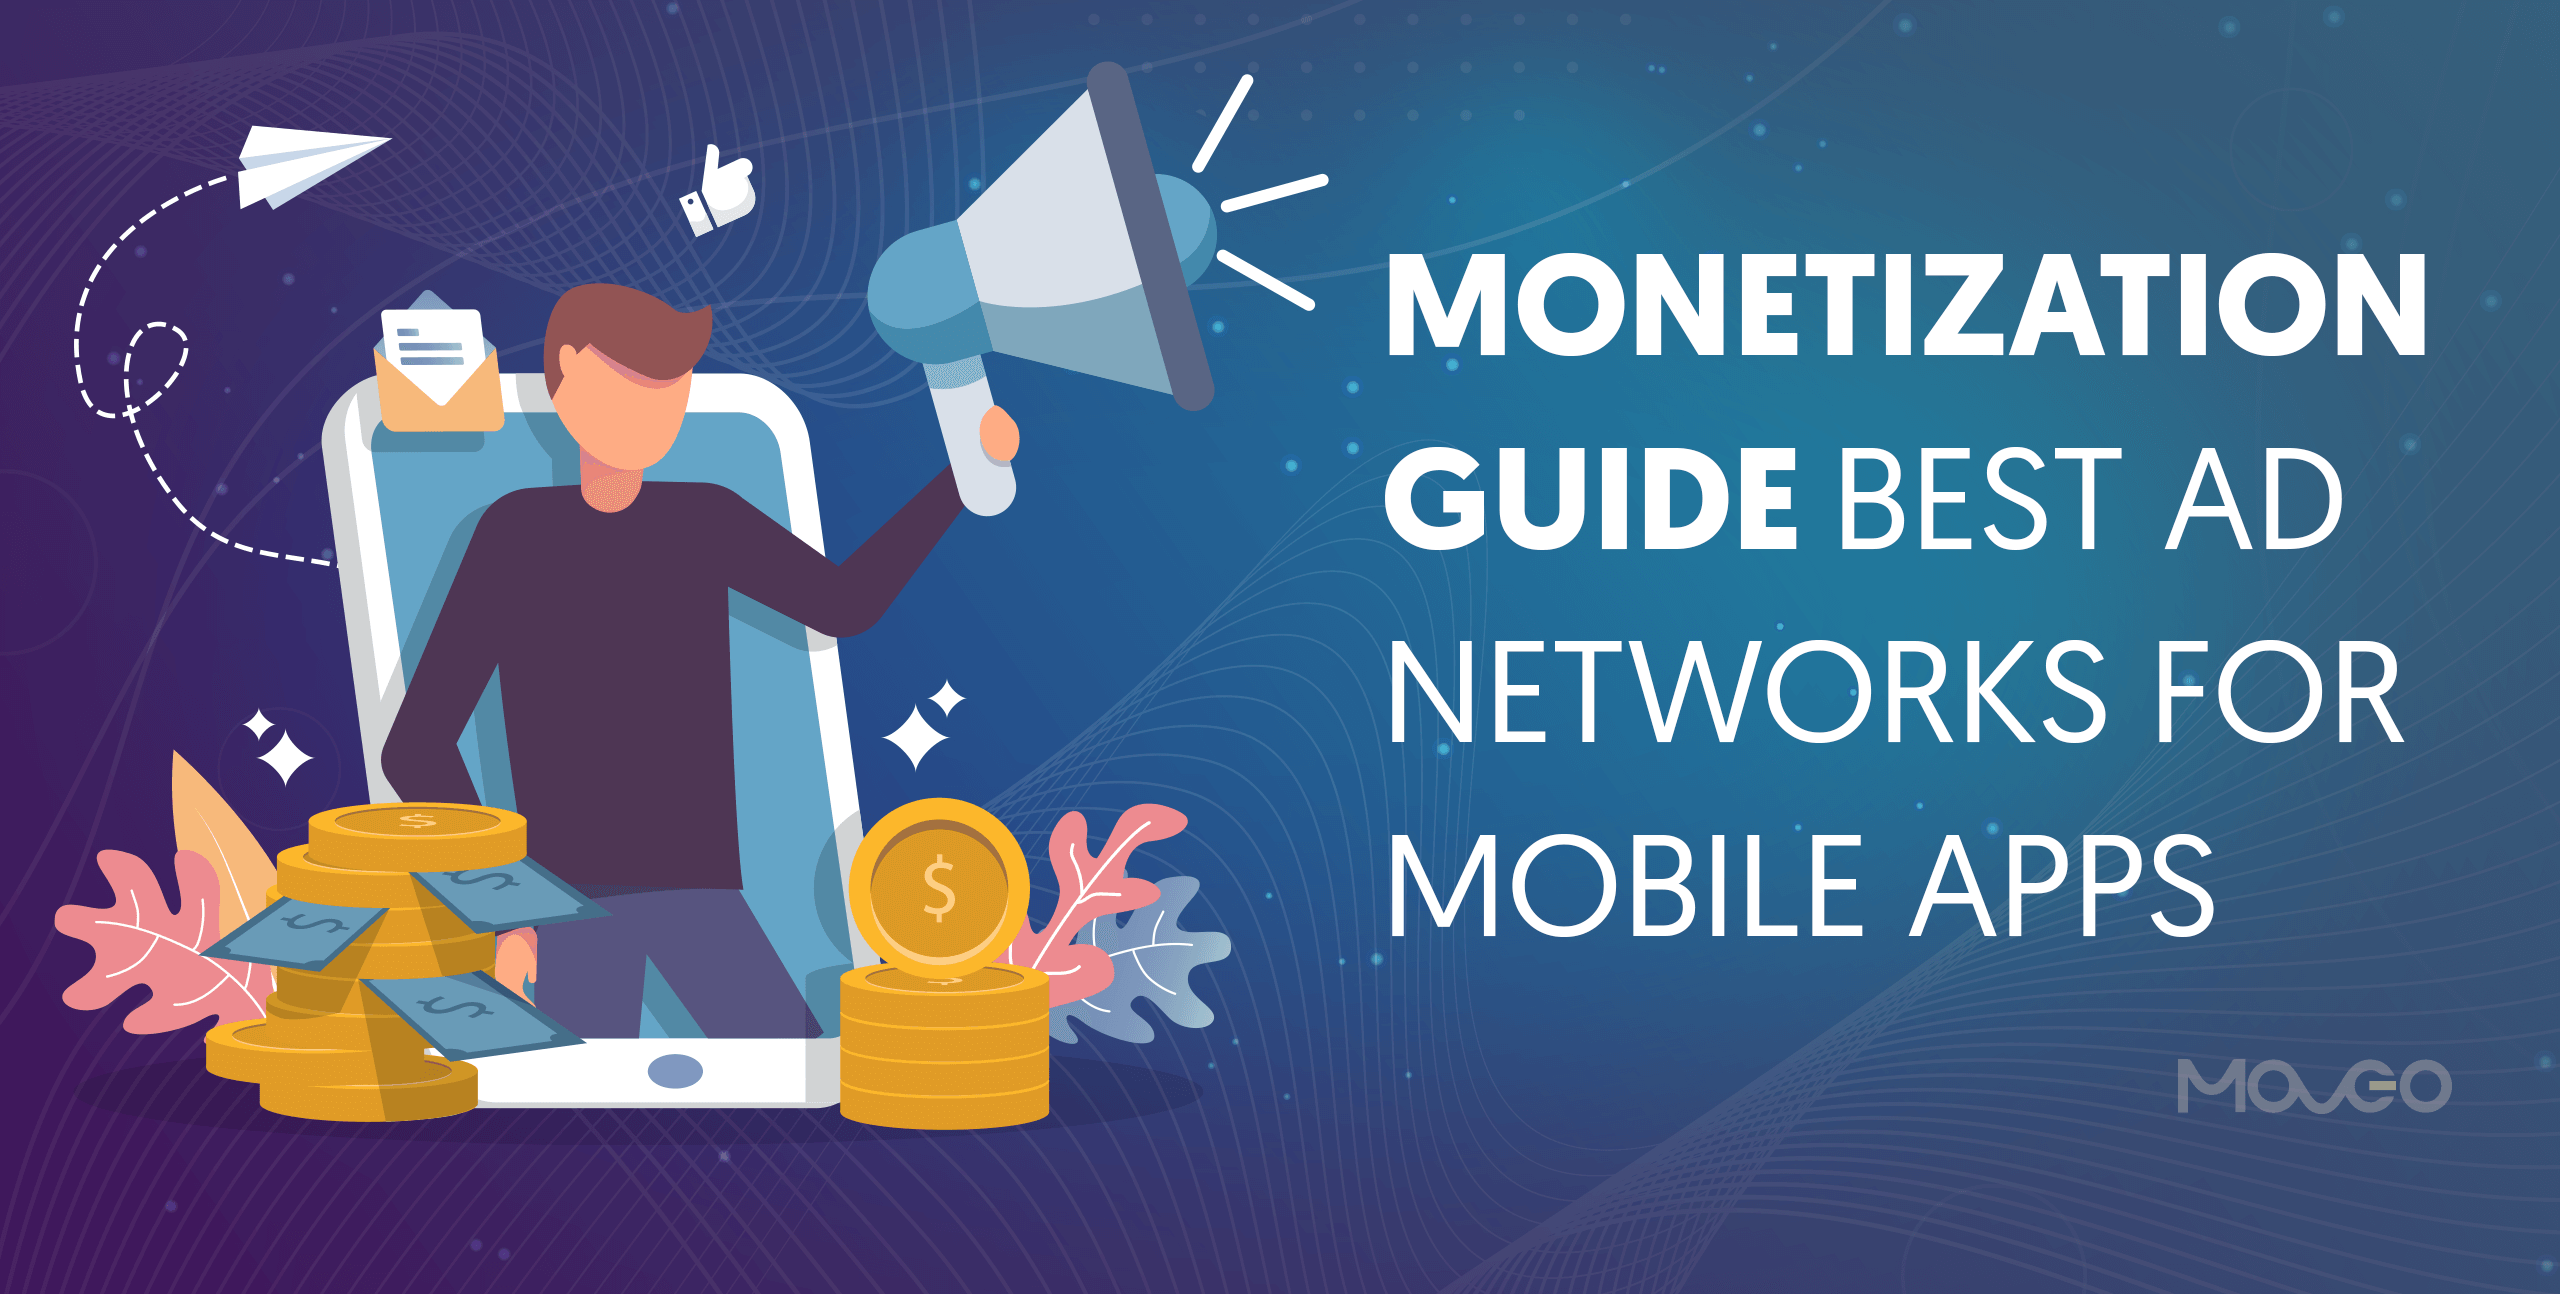 monetization guide best ad networks for mobile apps